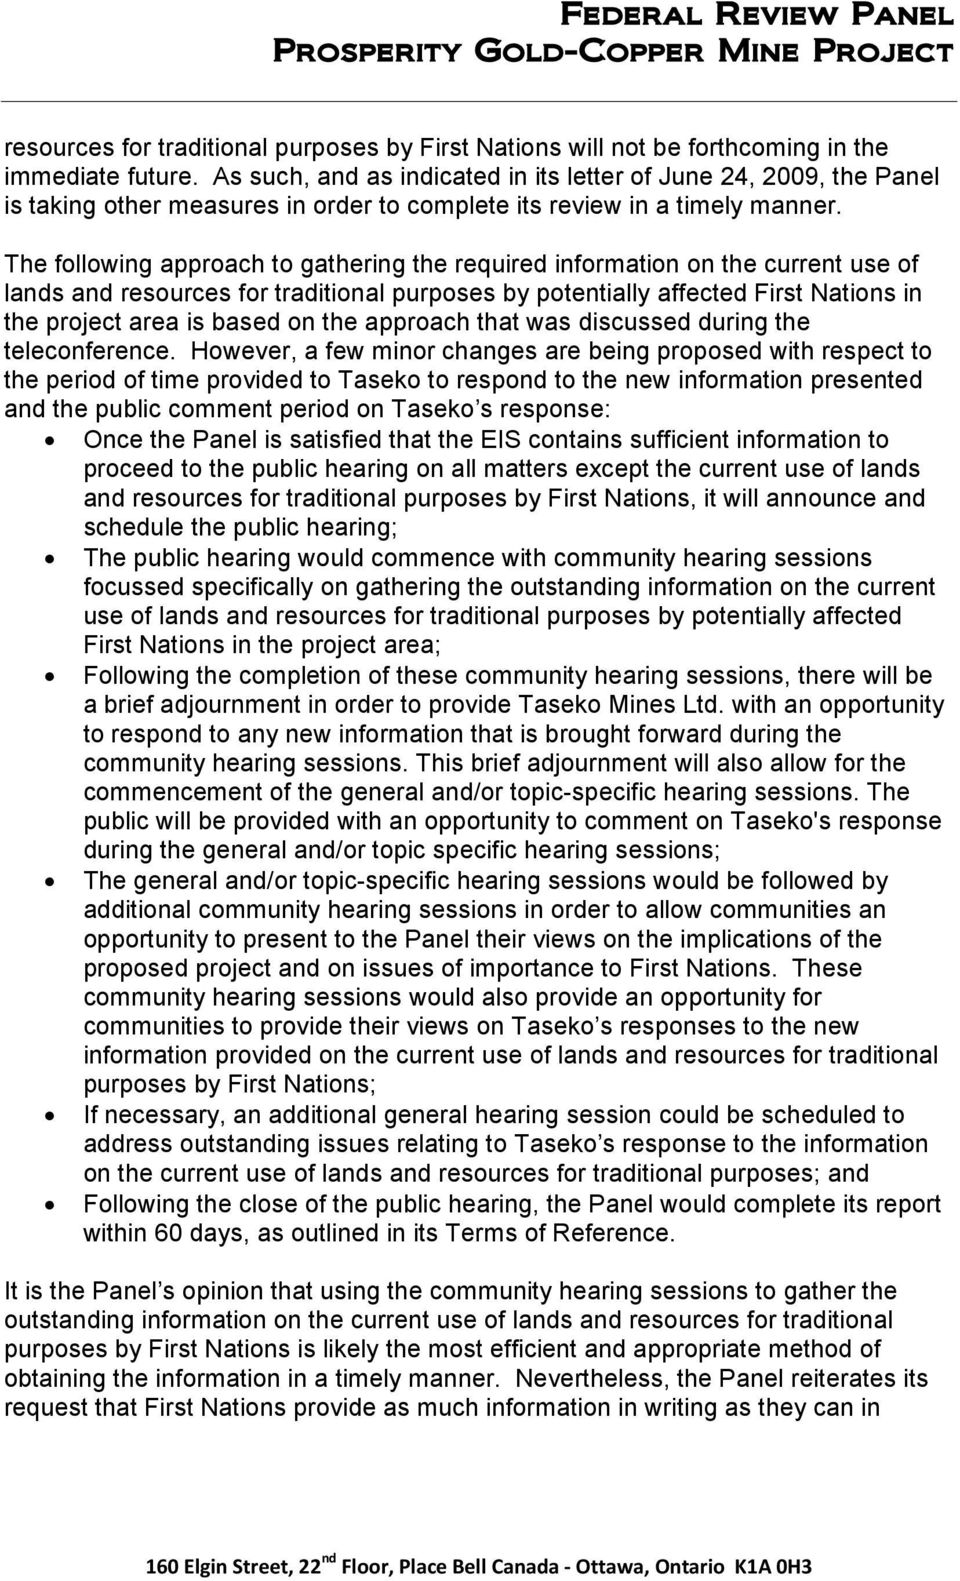 The following approach to gathering the required information on the current use of lands and resources for traditional purposes by potentially affected First Nations in the project area is based on